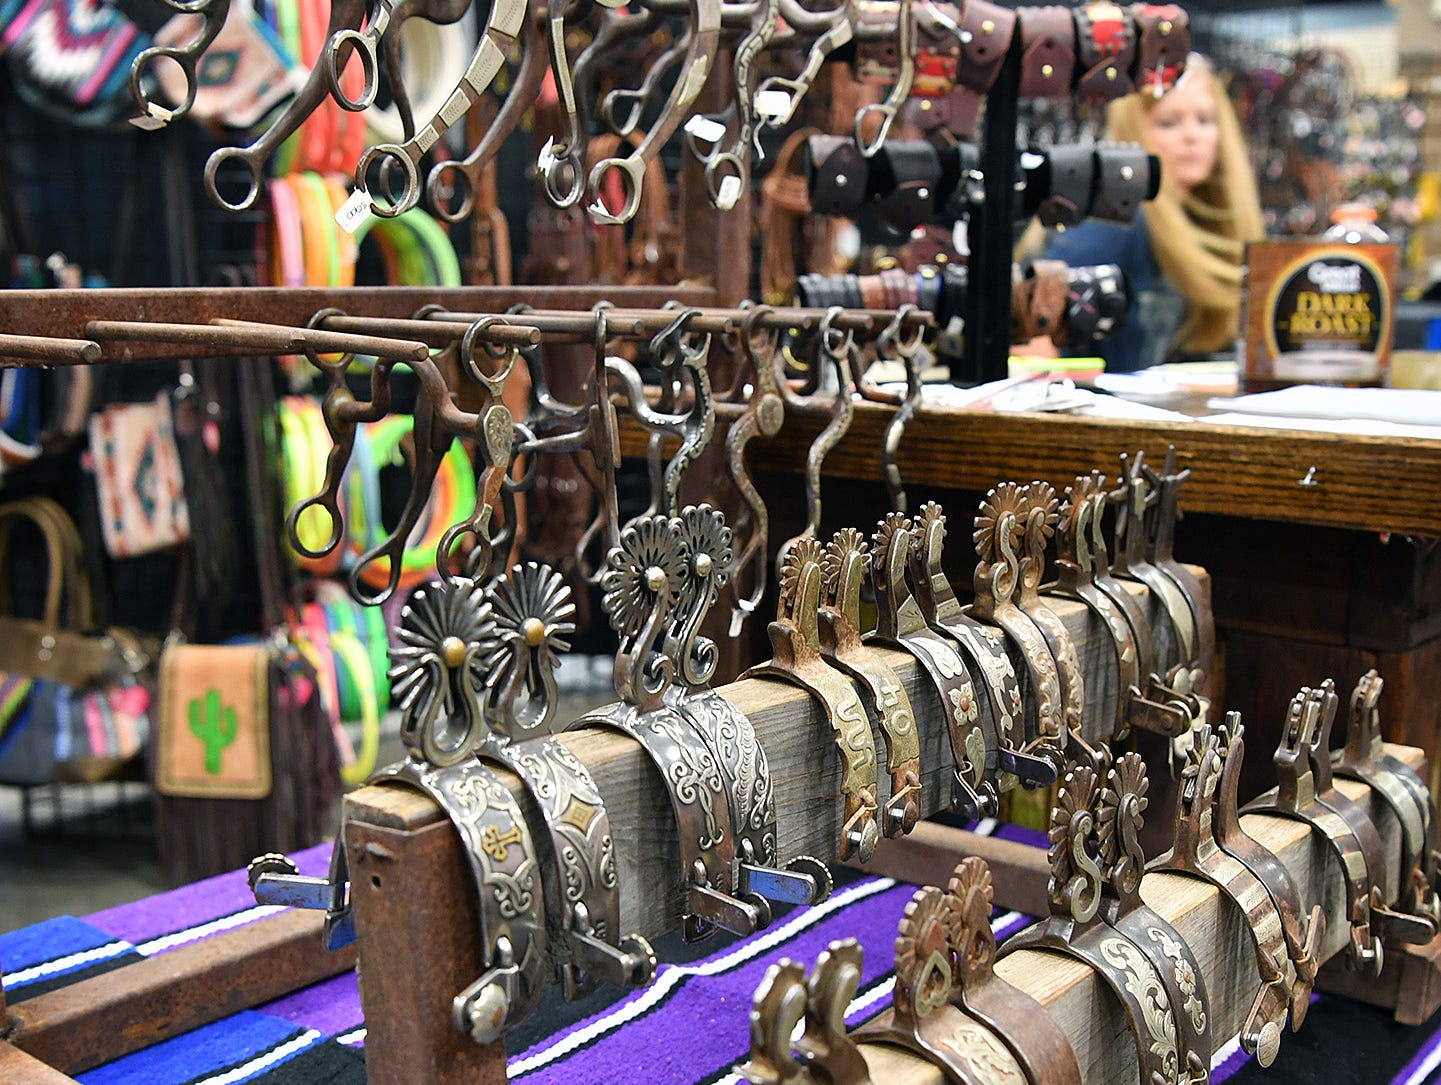 Functional style and artistic design of merge with the handmade bits and spurs on display at the Texas Ranch Roundup trade show Thursday morning at the Ray C;ymer Exhibit Hall.